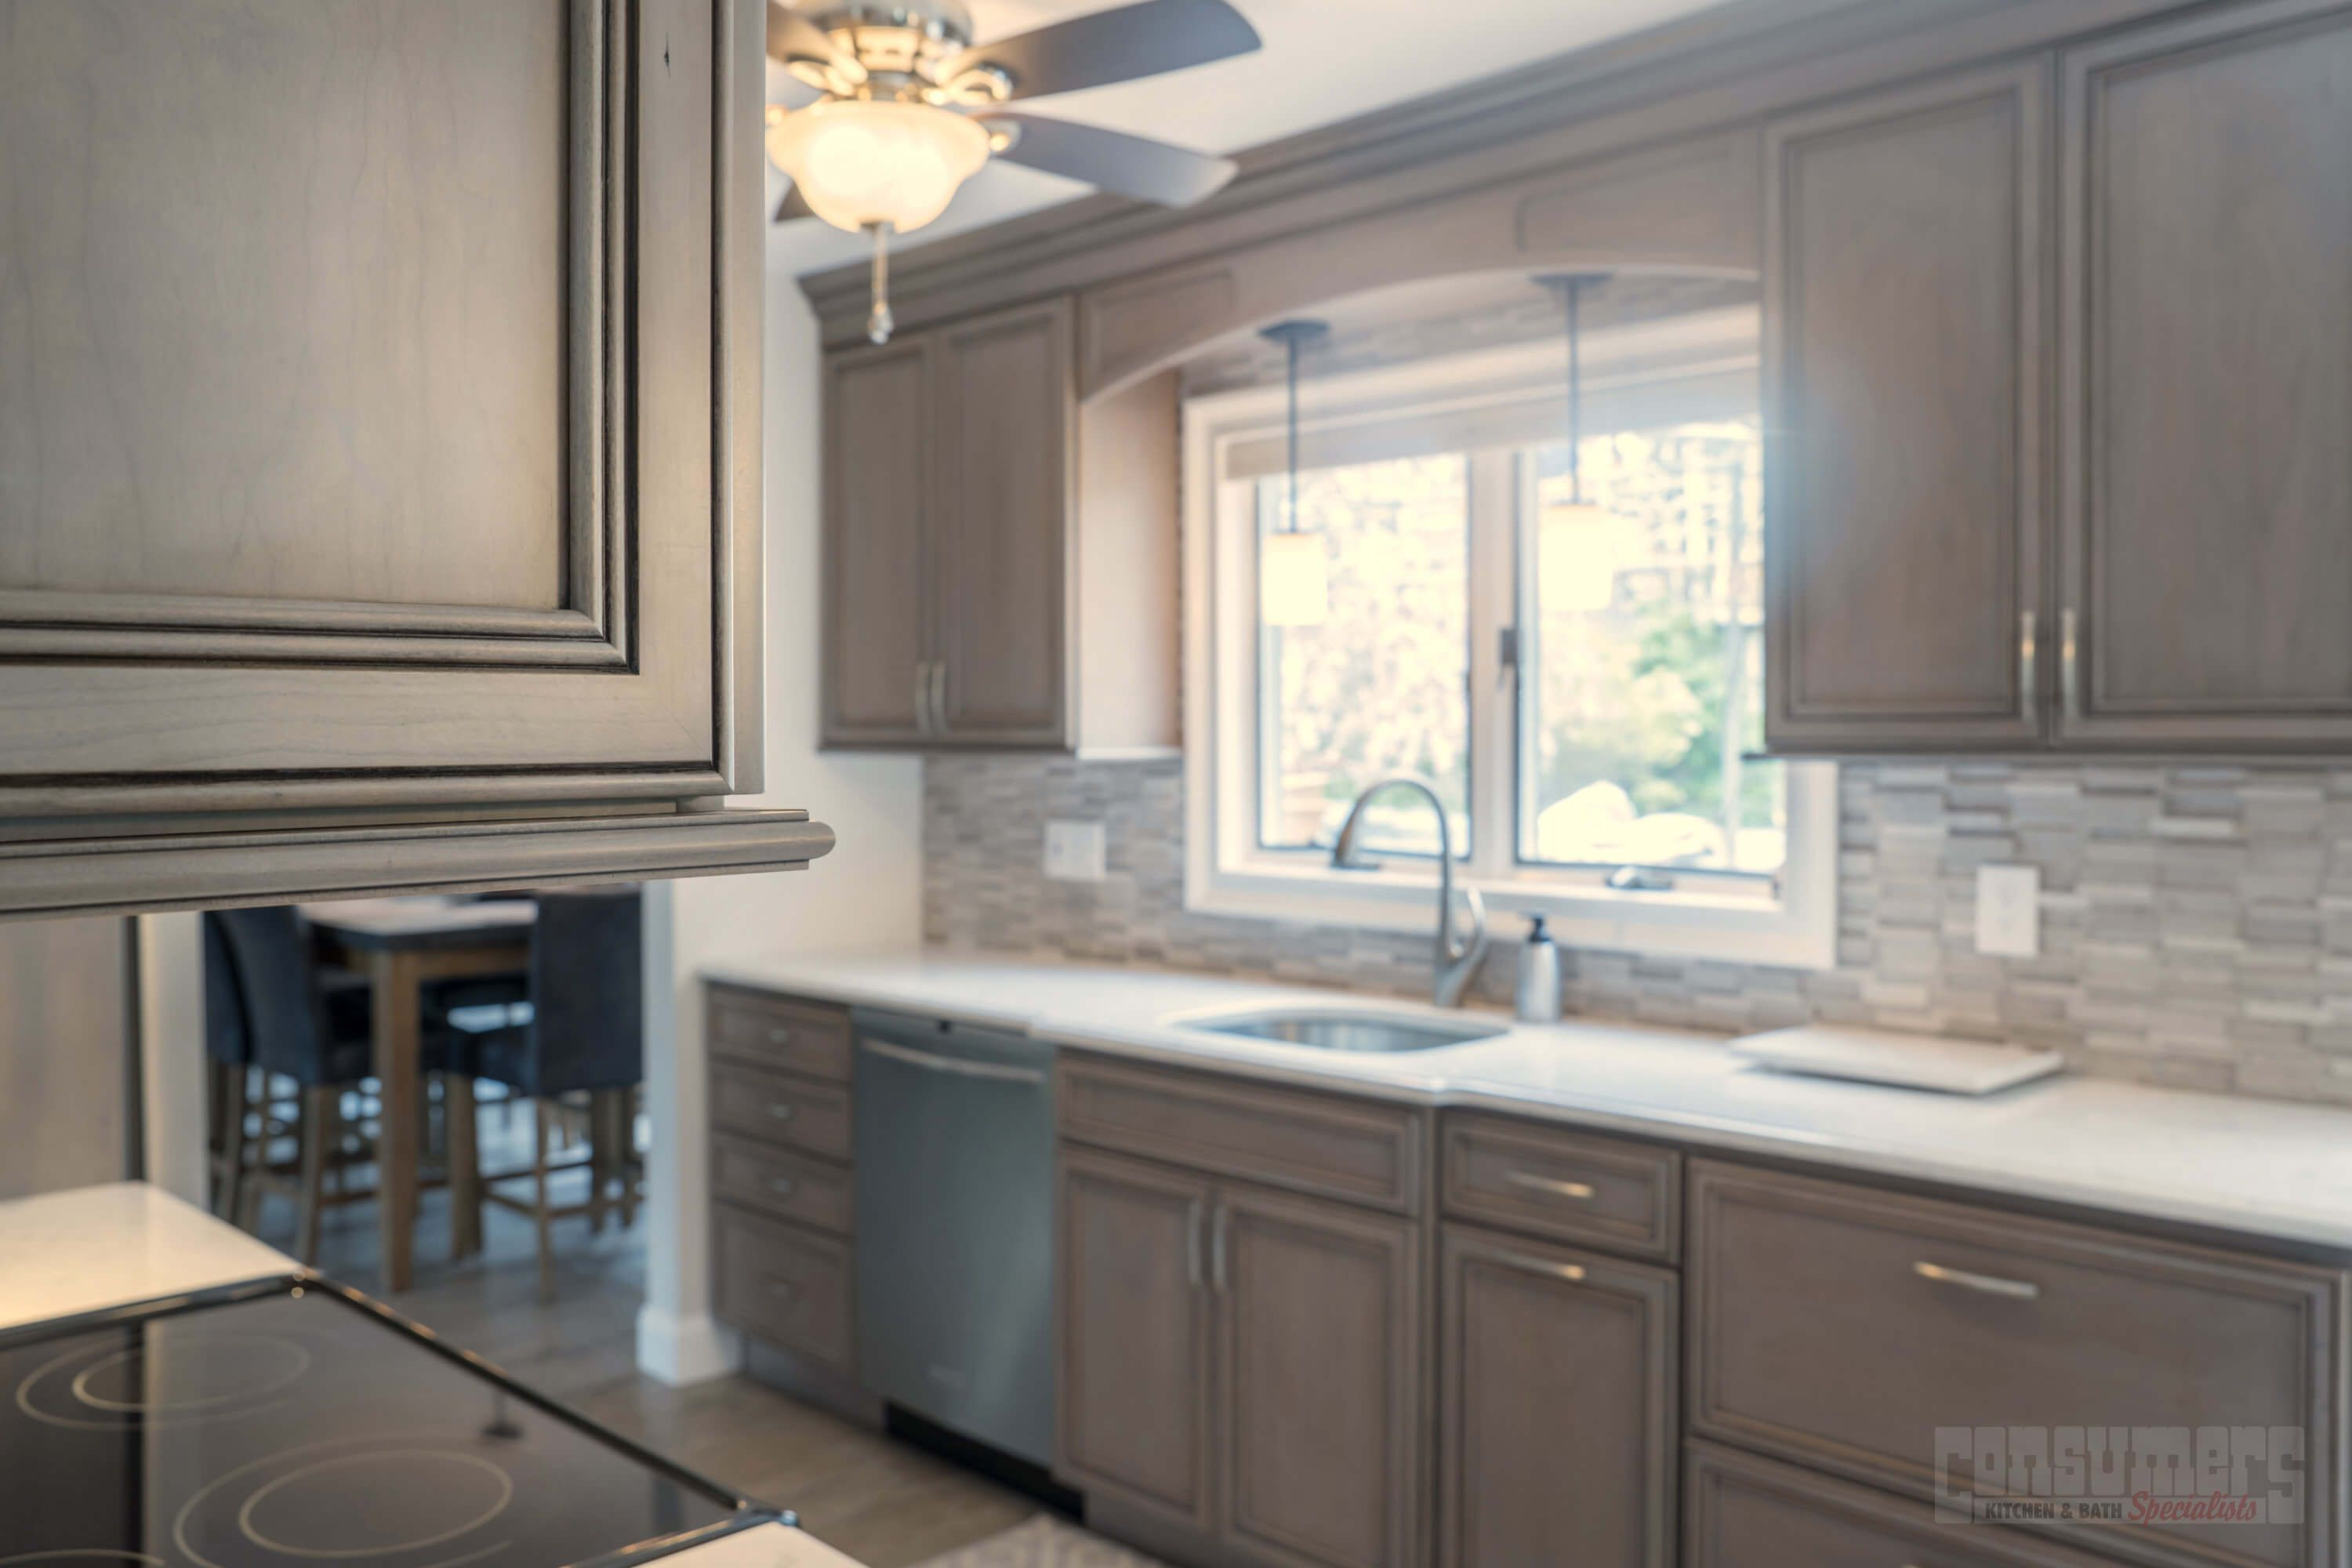 This Cherry Kitchen Was Designed With Starmark Cabinets In The Brisbane  Door Style. Featuring Driftwood Stain And Java Stain Finishes, The Cambria  Torquay ...